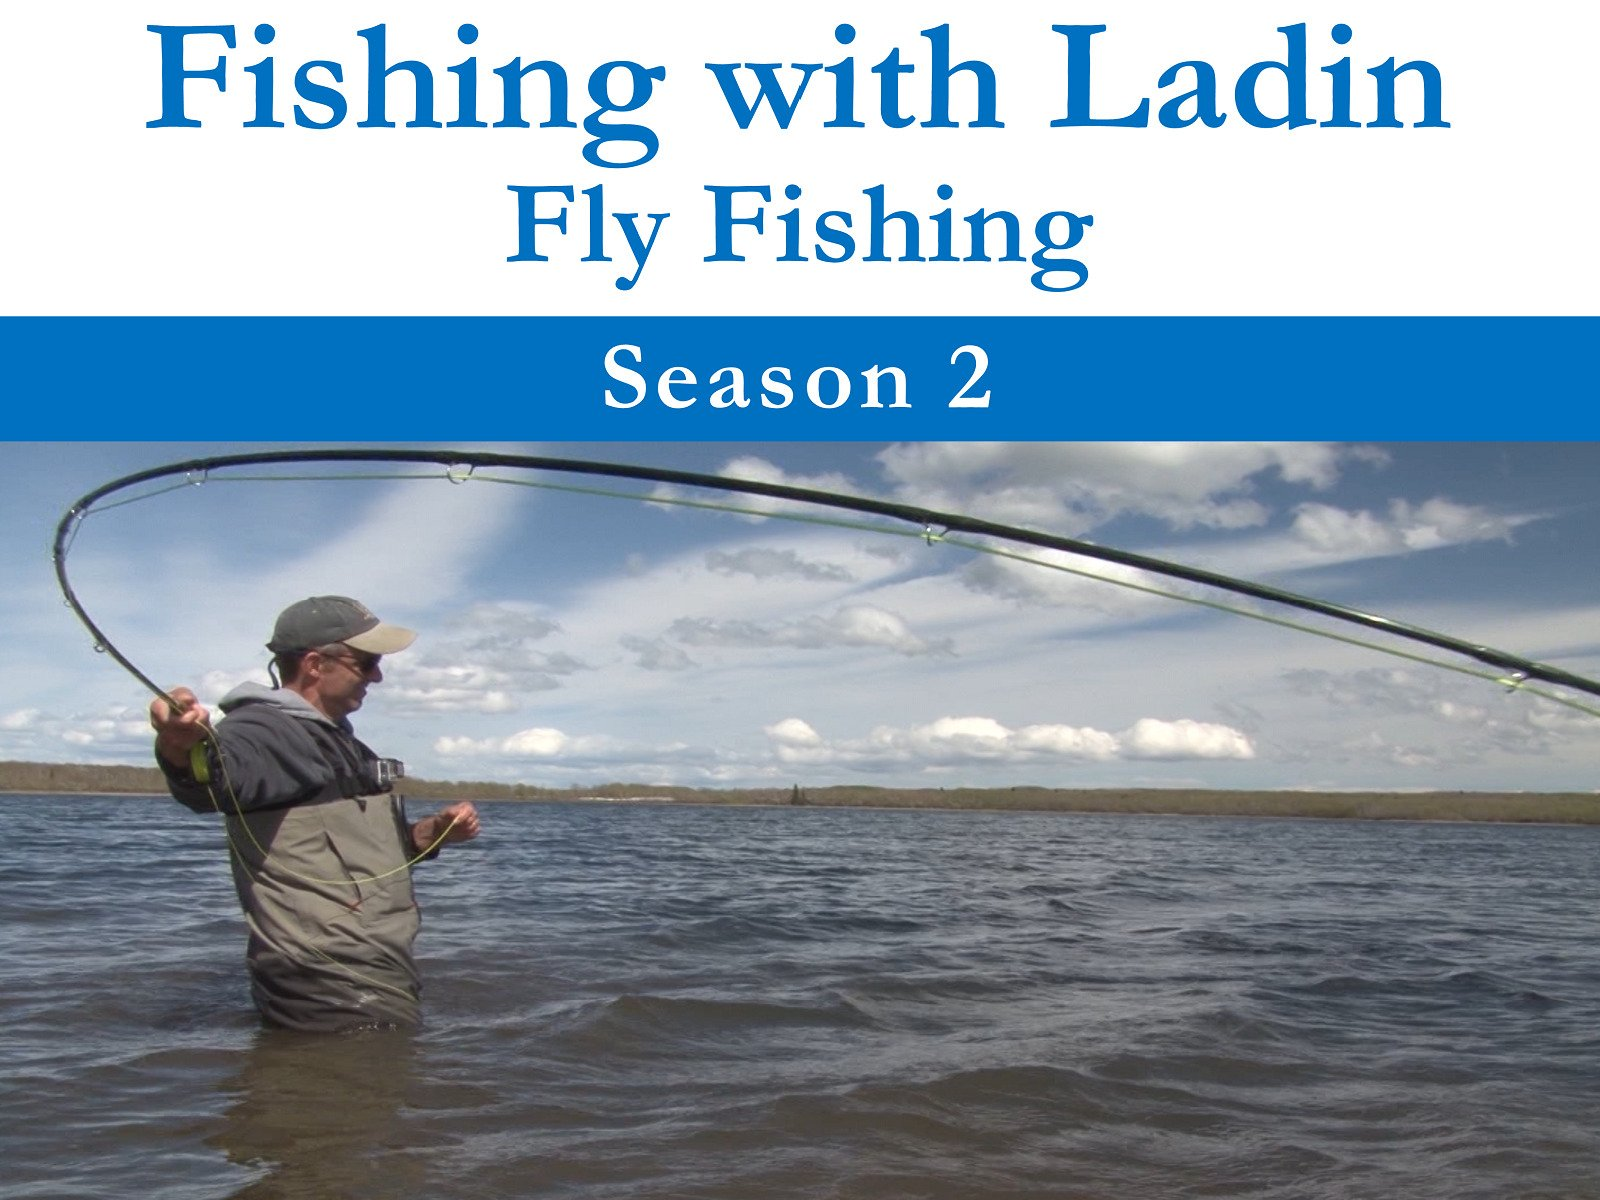 Fishing with Ladin: Fly Fishing